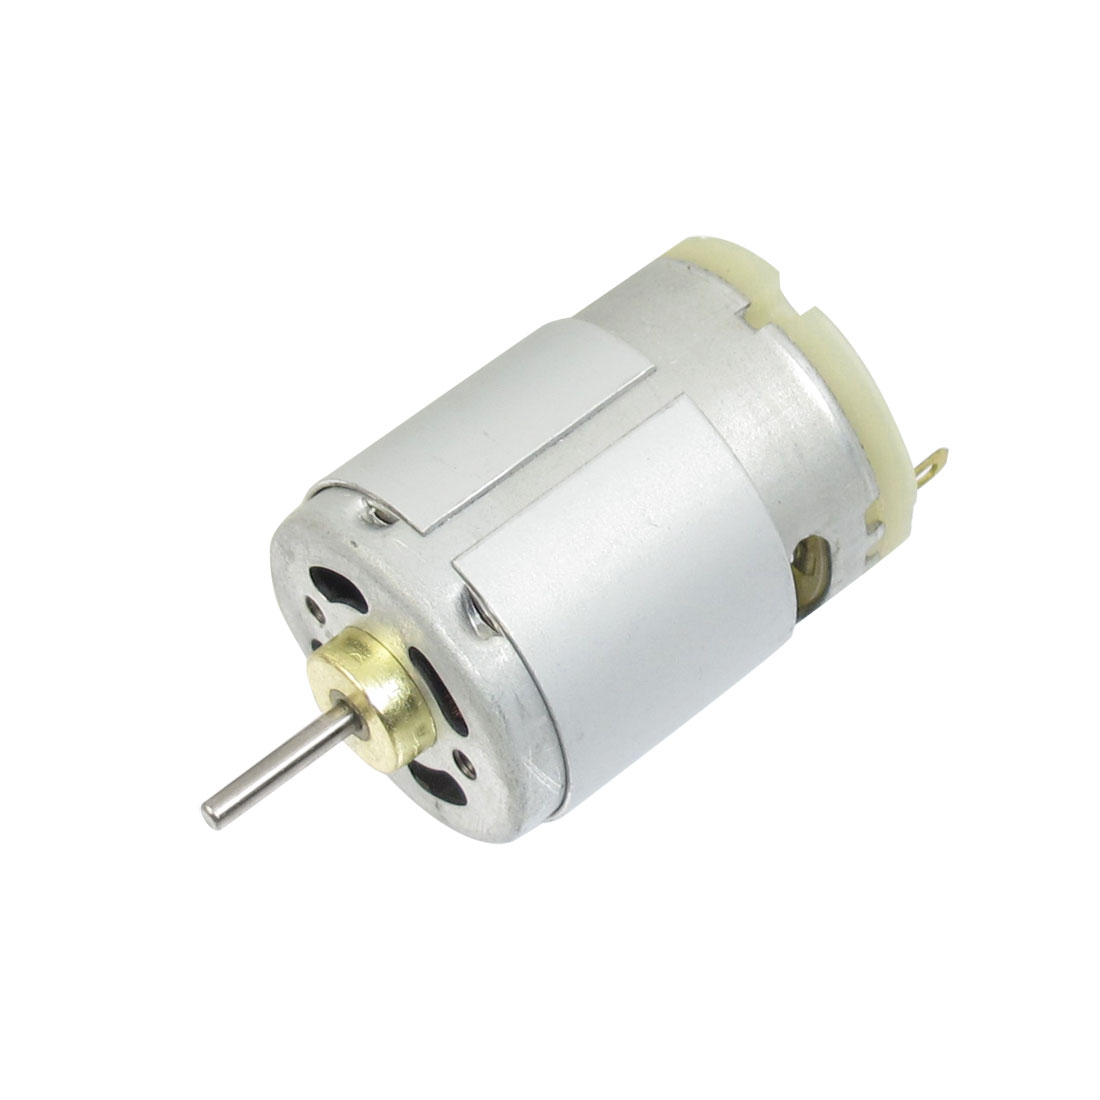 7100RPM DC 9V 29mm Dia Electric Component Micro Motor